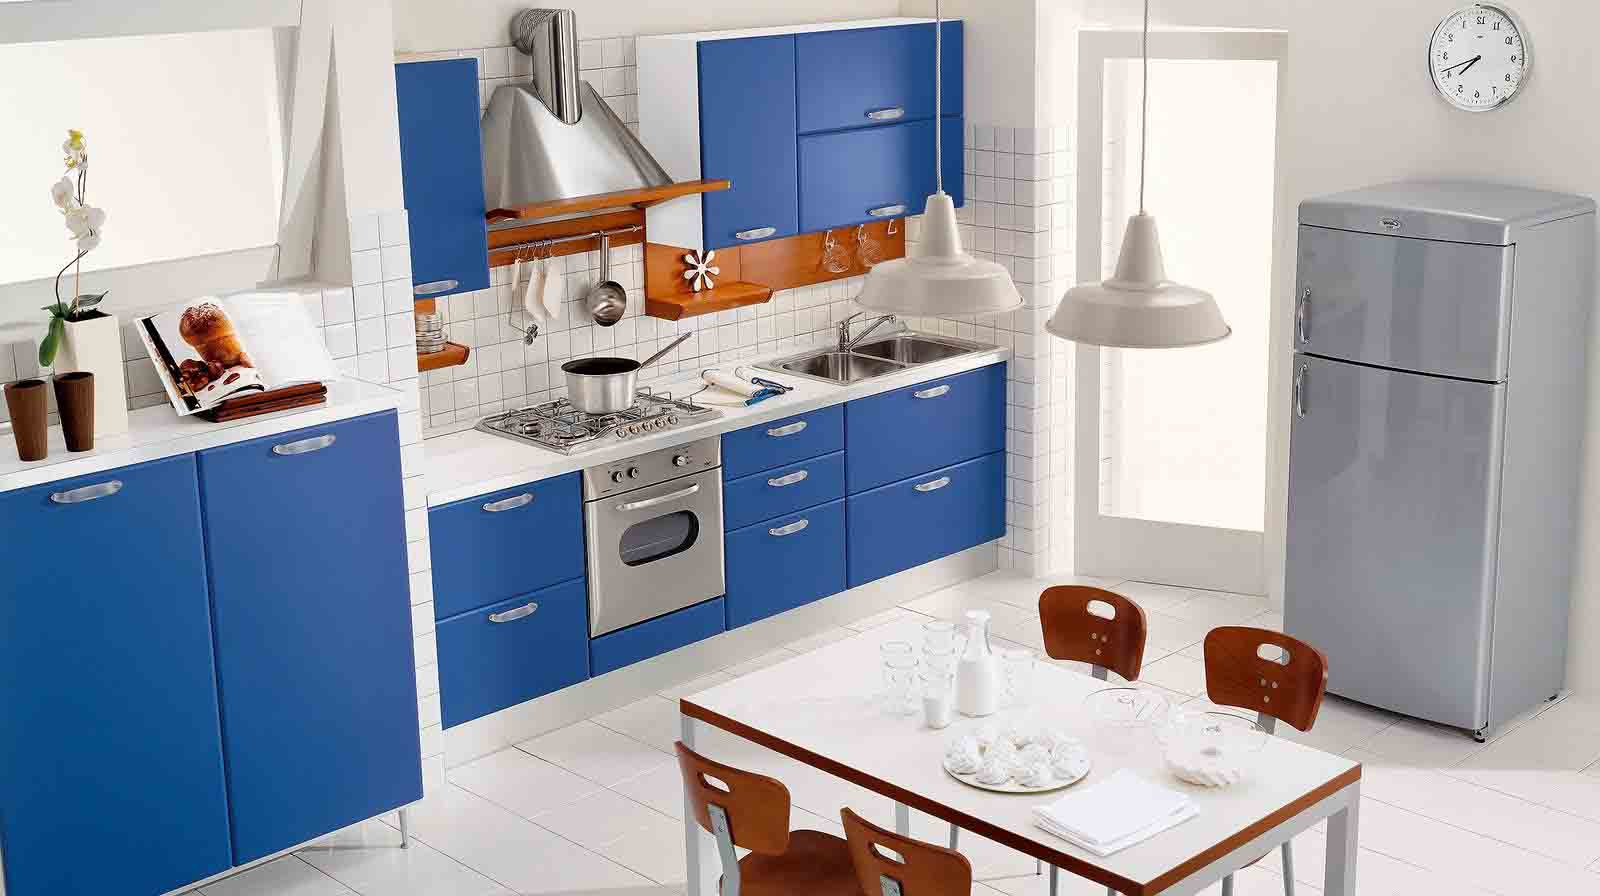 Kitchen make your kitchen dazzle with pertaining to kitchen design - Blue And White Kitchen